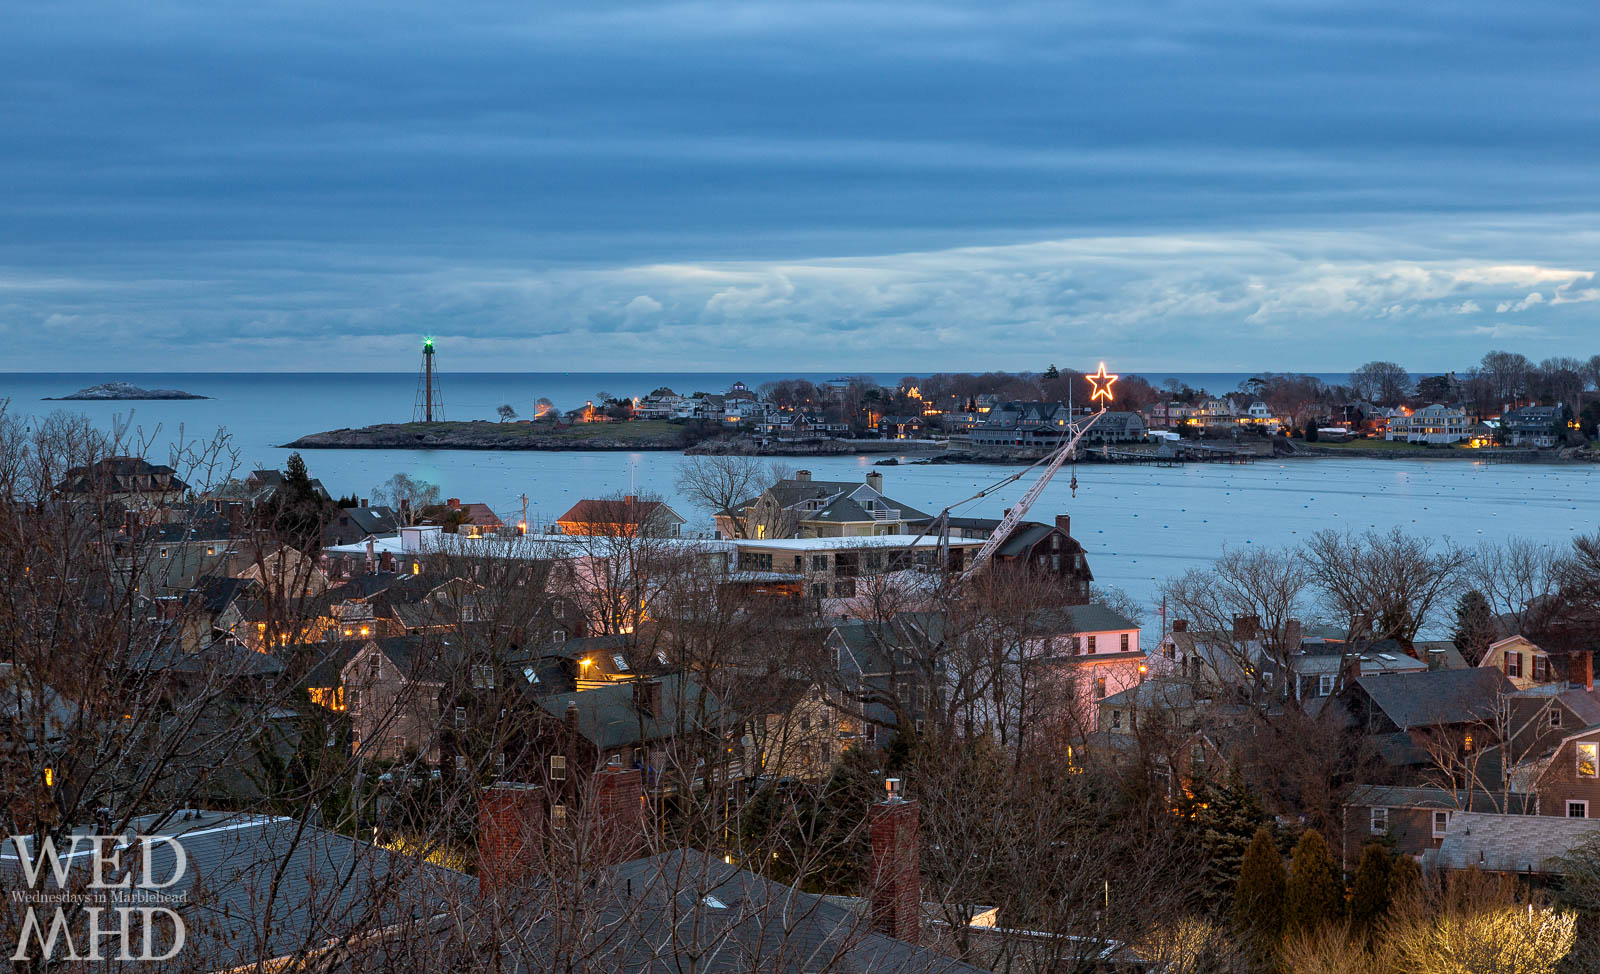 A star shines over Marblehead Neck in this New Years Day image from atop St. Michael's Church